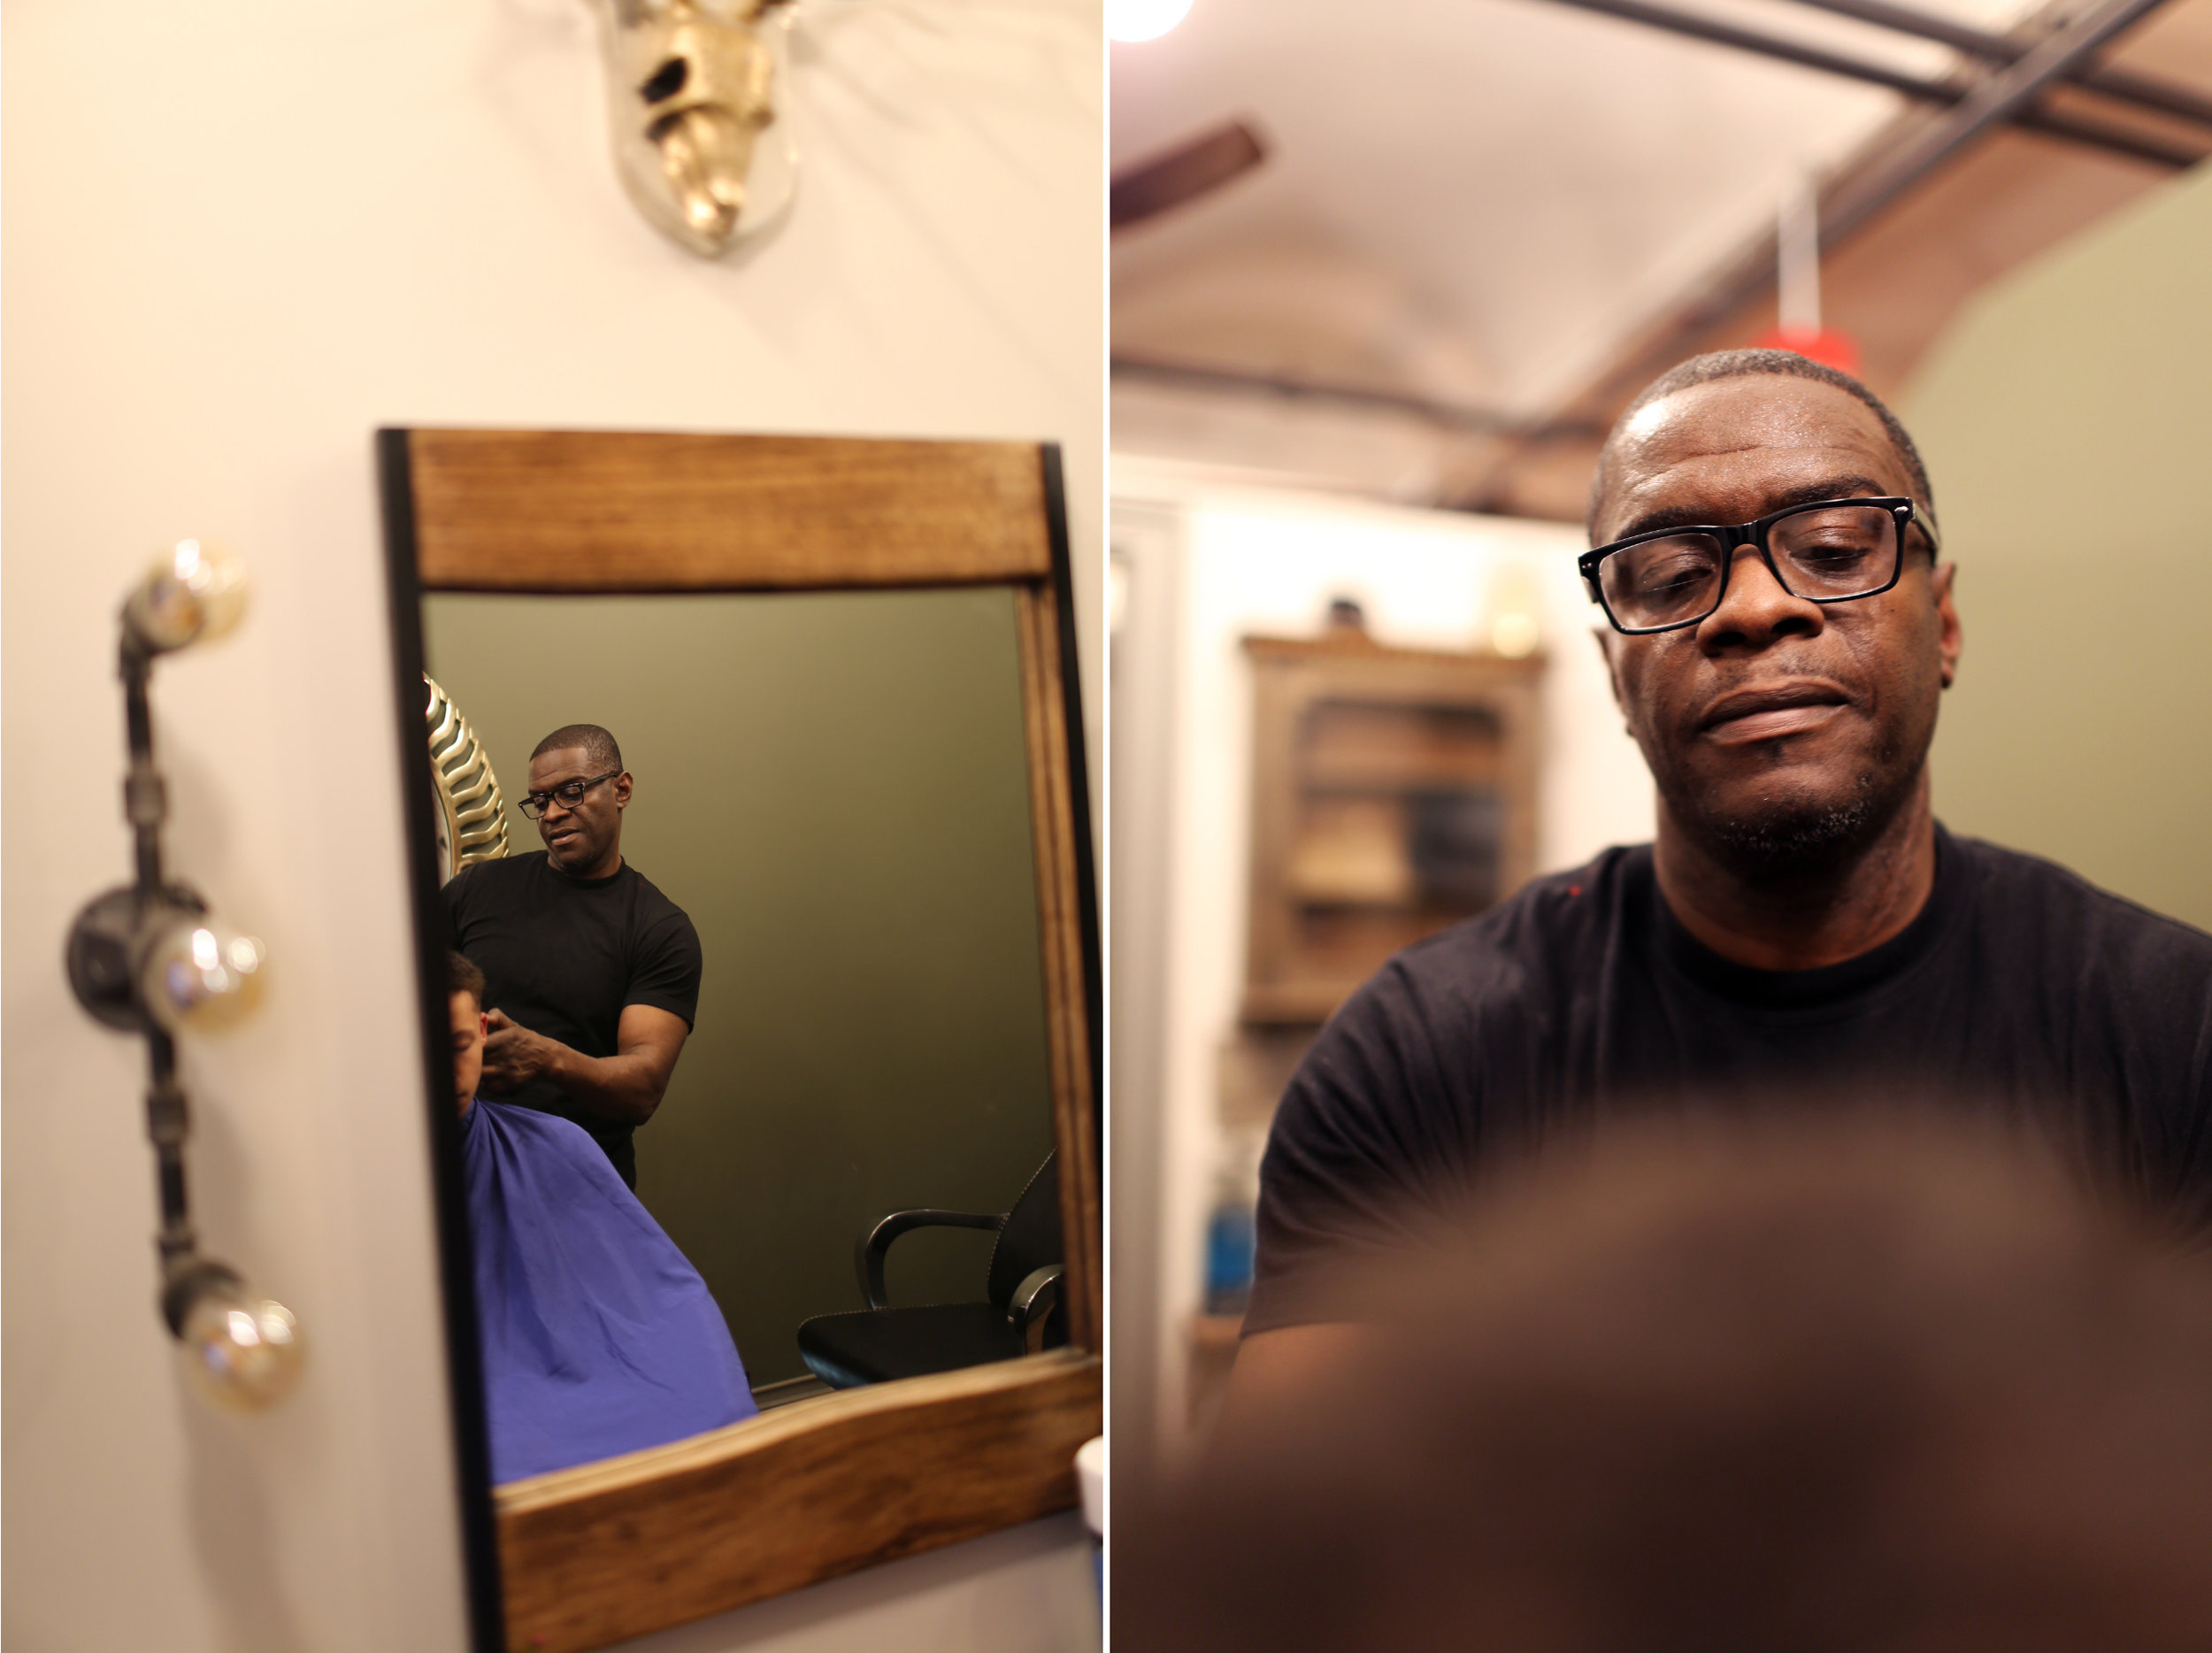 Mark Denny poses at his barbershop in Brooklyn. He was recently exonerated after being convicted at 17. Photo by Kunjo.